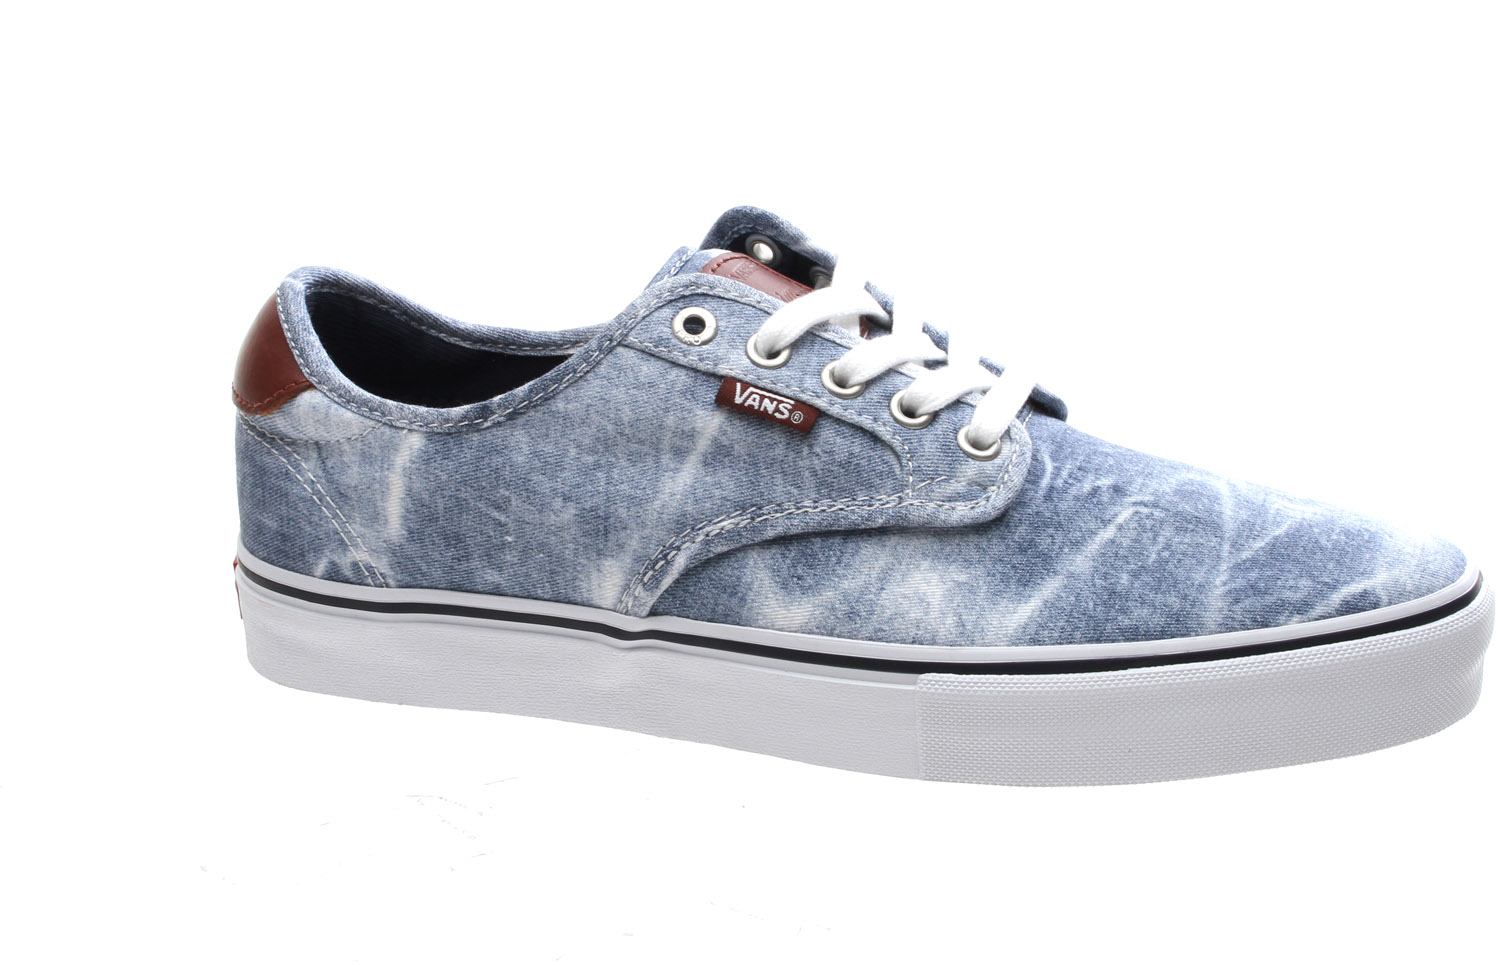 vans chima pro acid wash skate shoes nz